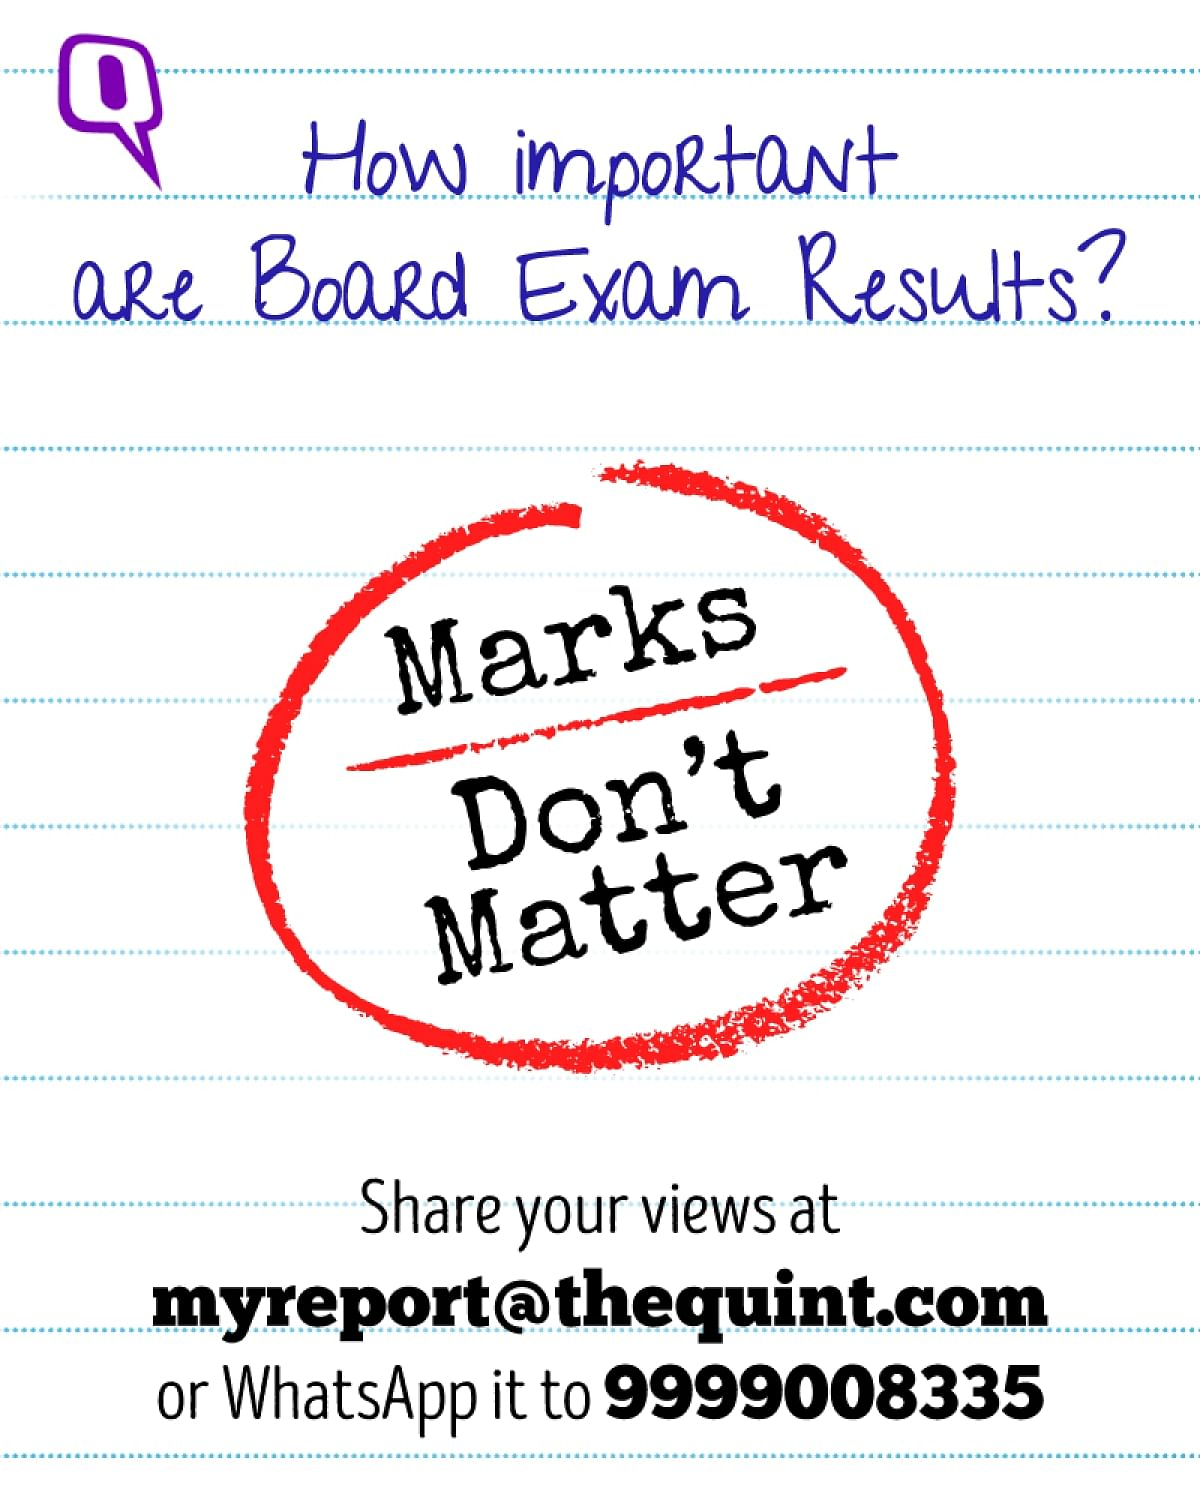 Marks Don't Matter, There's Lots Waiting for You After Exams